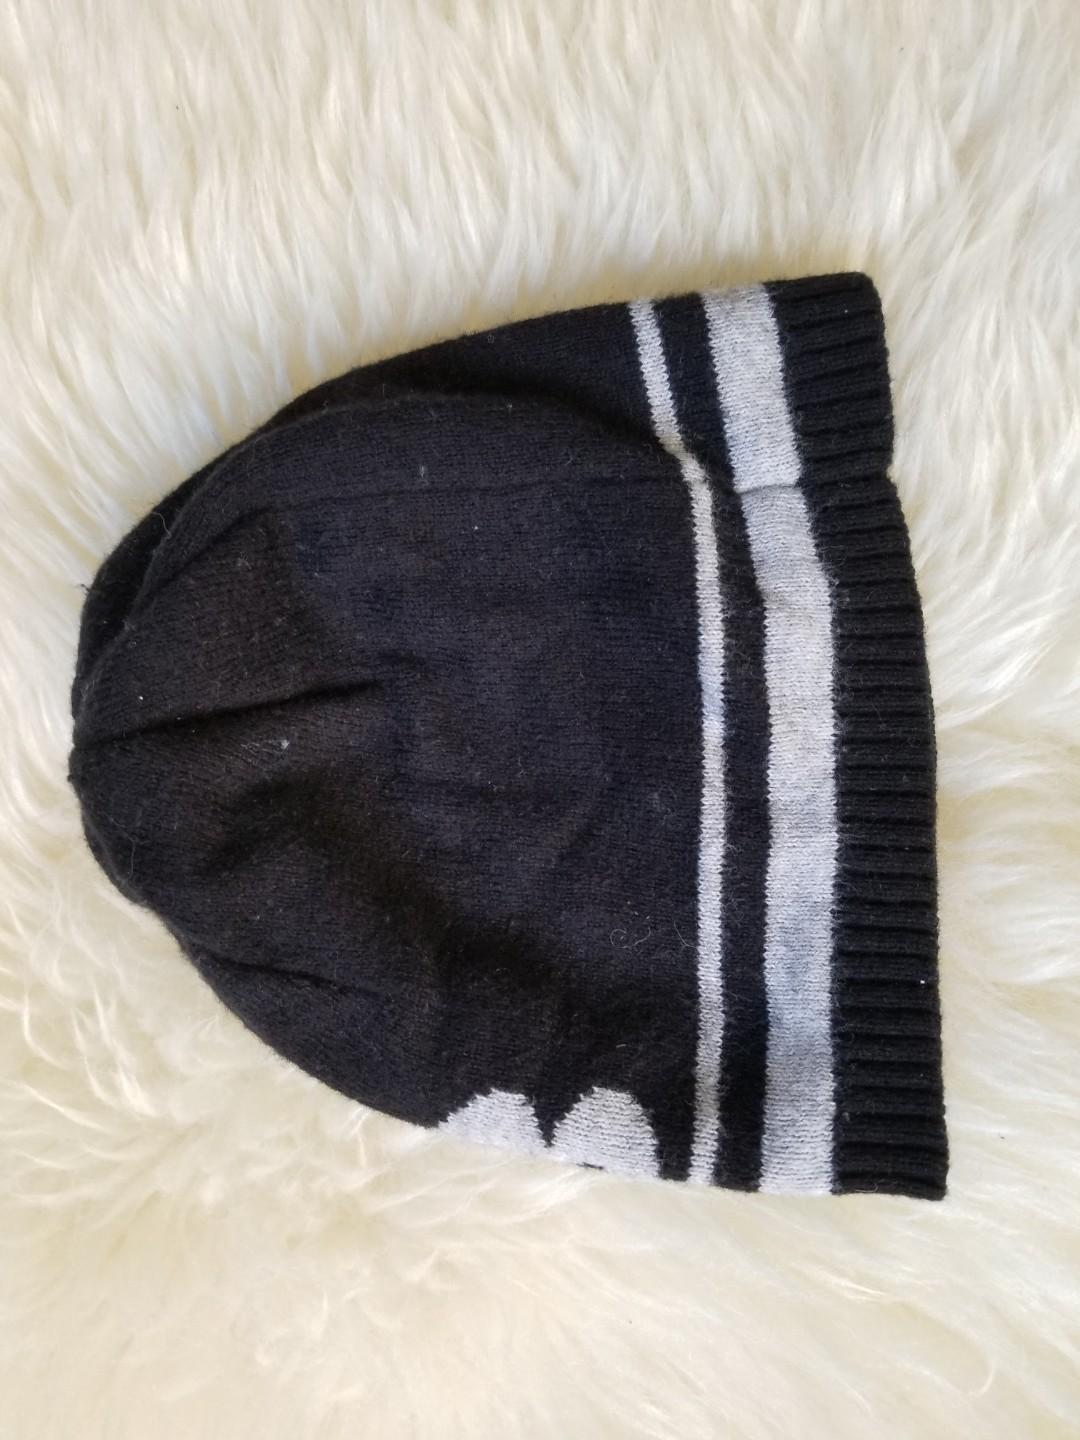 Benetton wool cashmere beanie. Size 0-6mths. New condition. PU gerrard and main for $9 or Yorkville for $10.